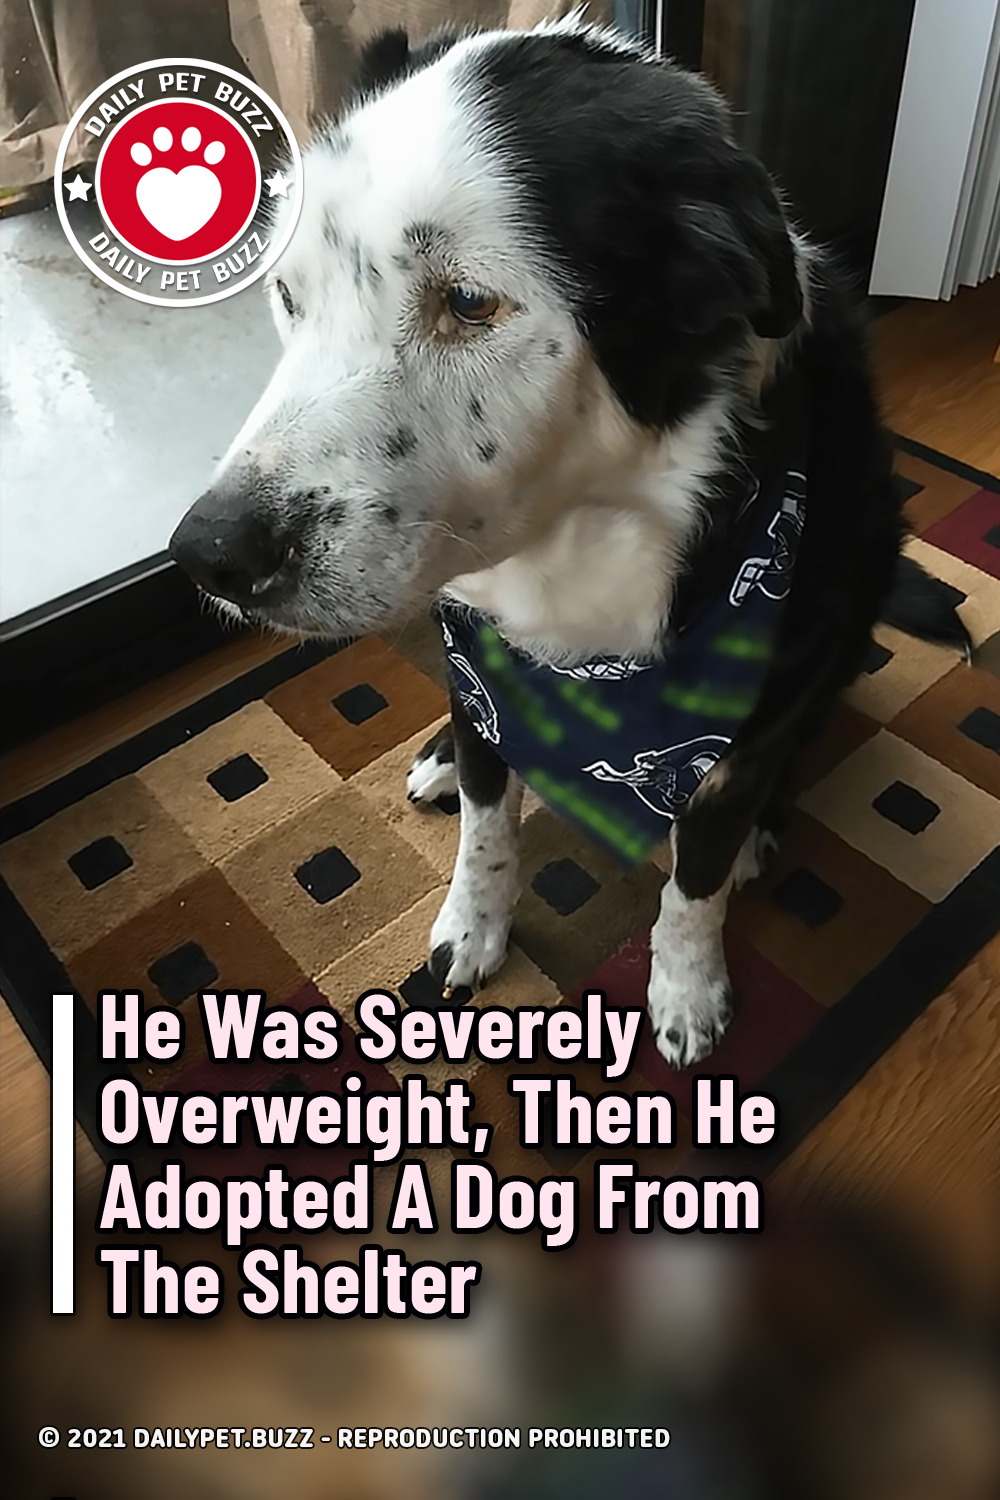 He Was Severely Overweight, Then He Adopted A Dog From The Shelter